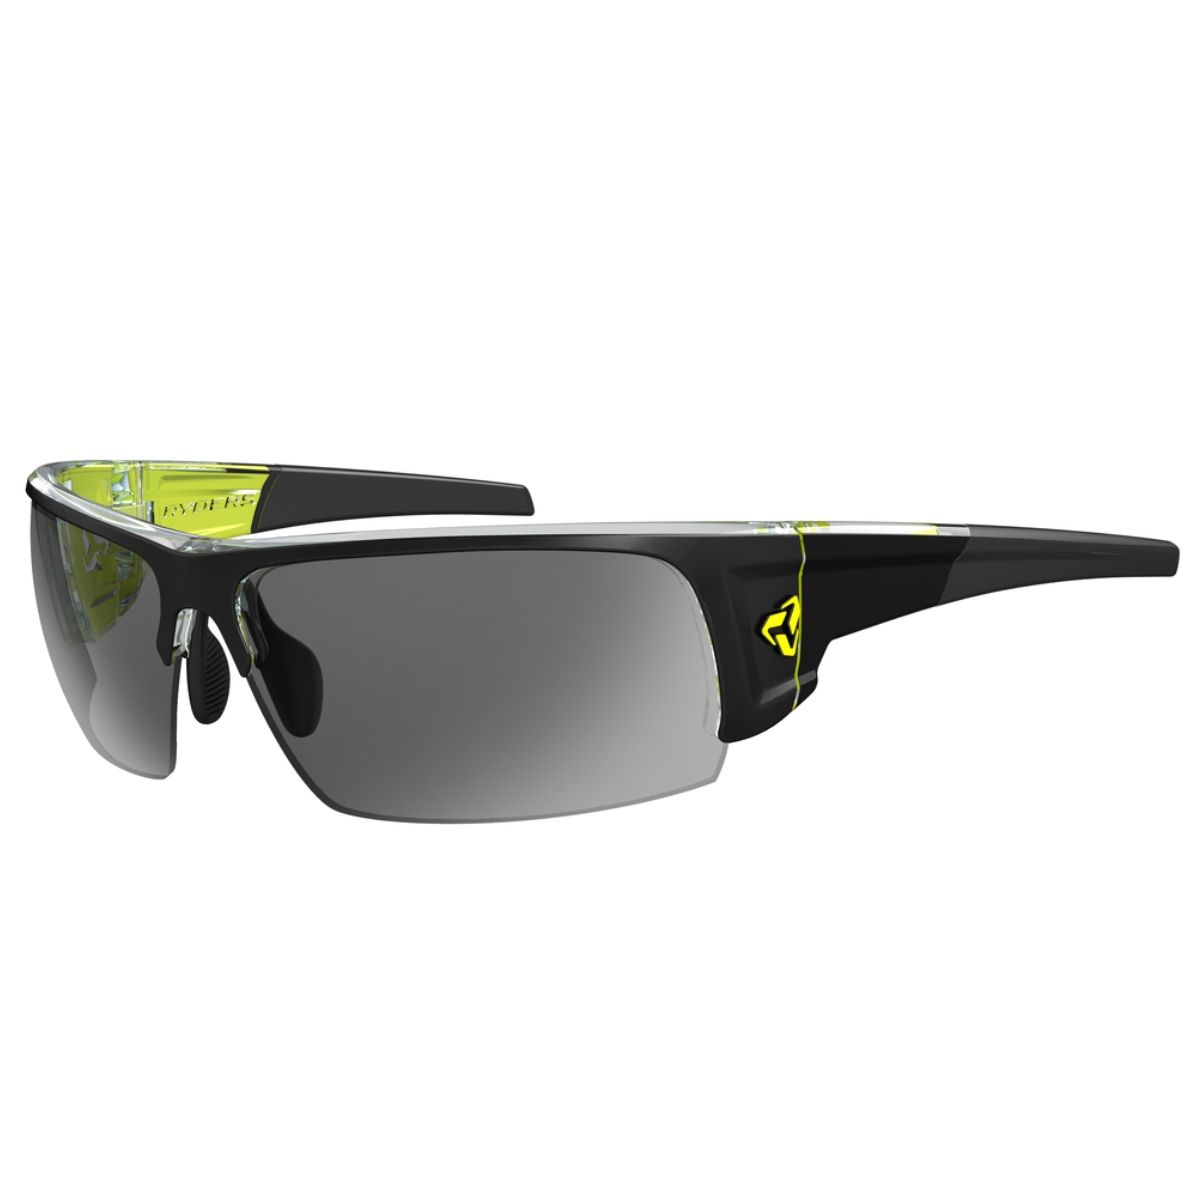 Lunettes Ryders Caliber